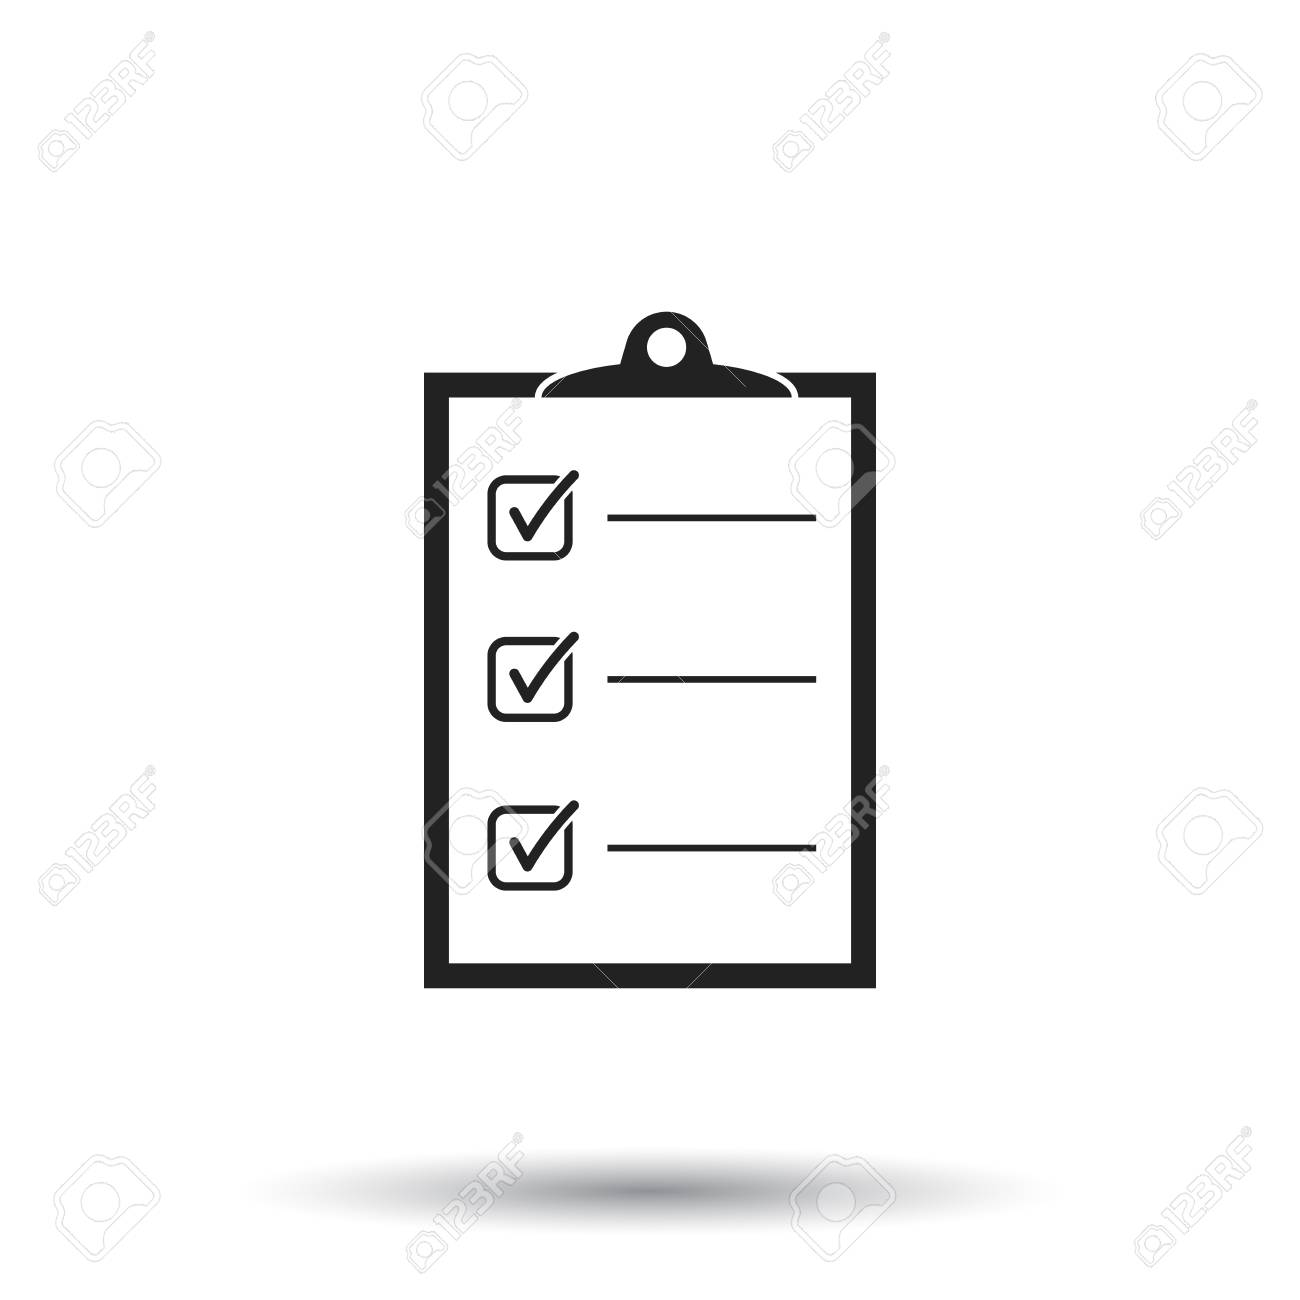 to do list icon. checklist, task list vector illustration in